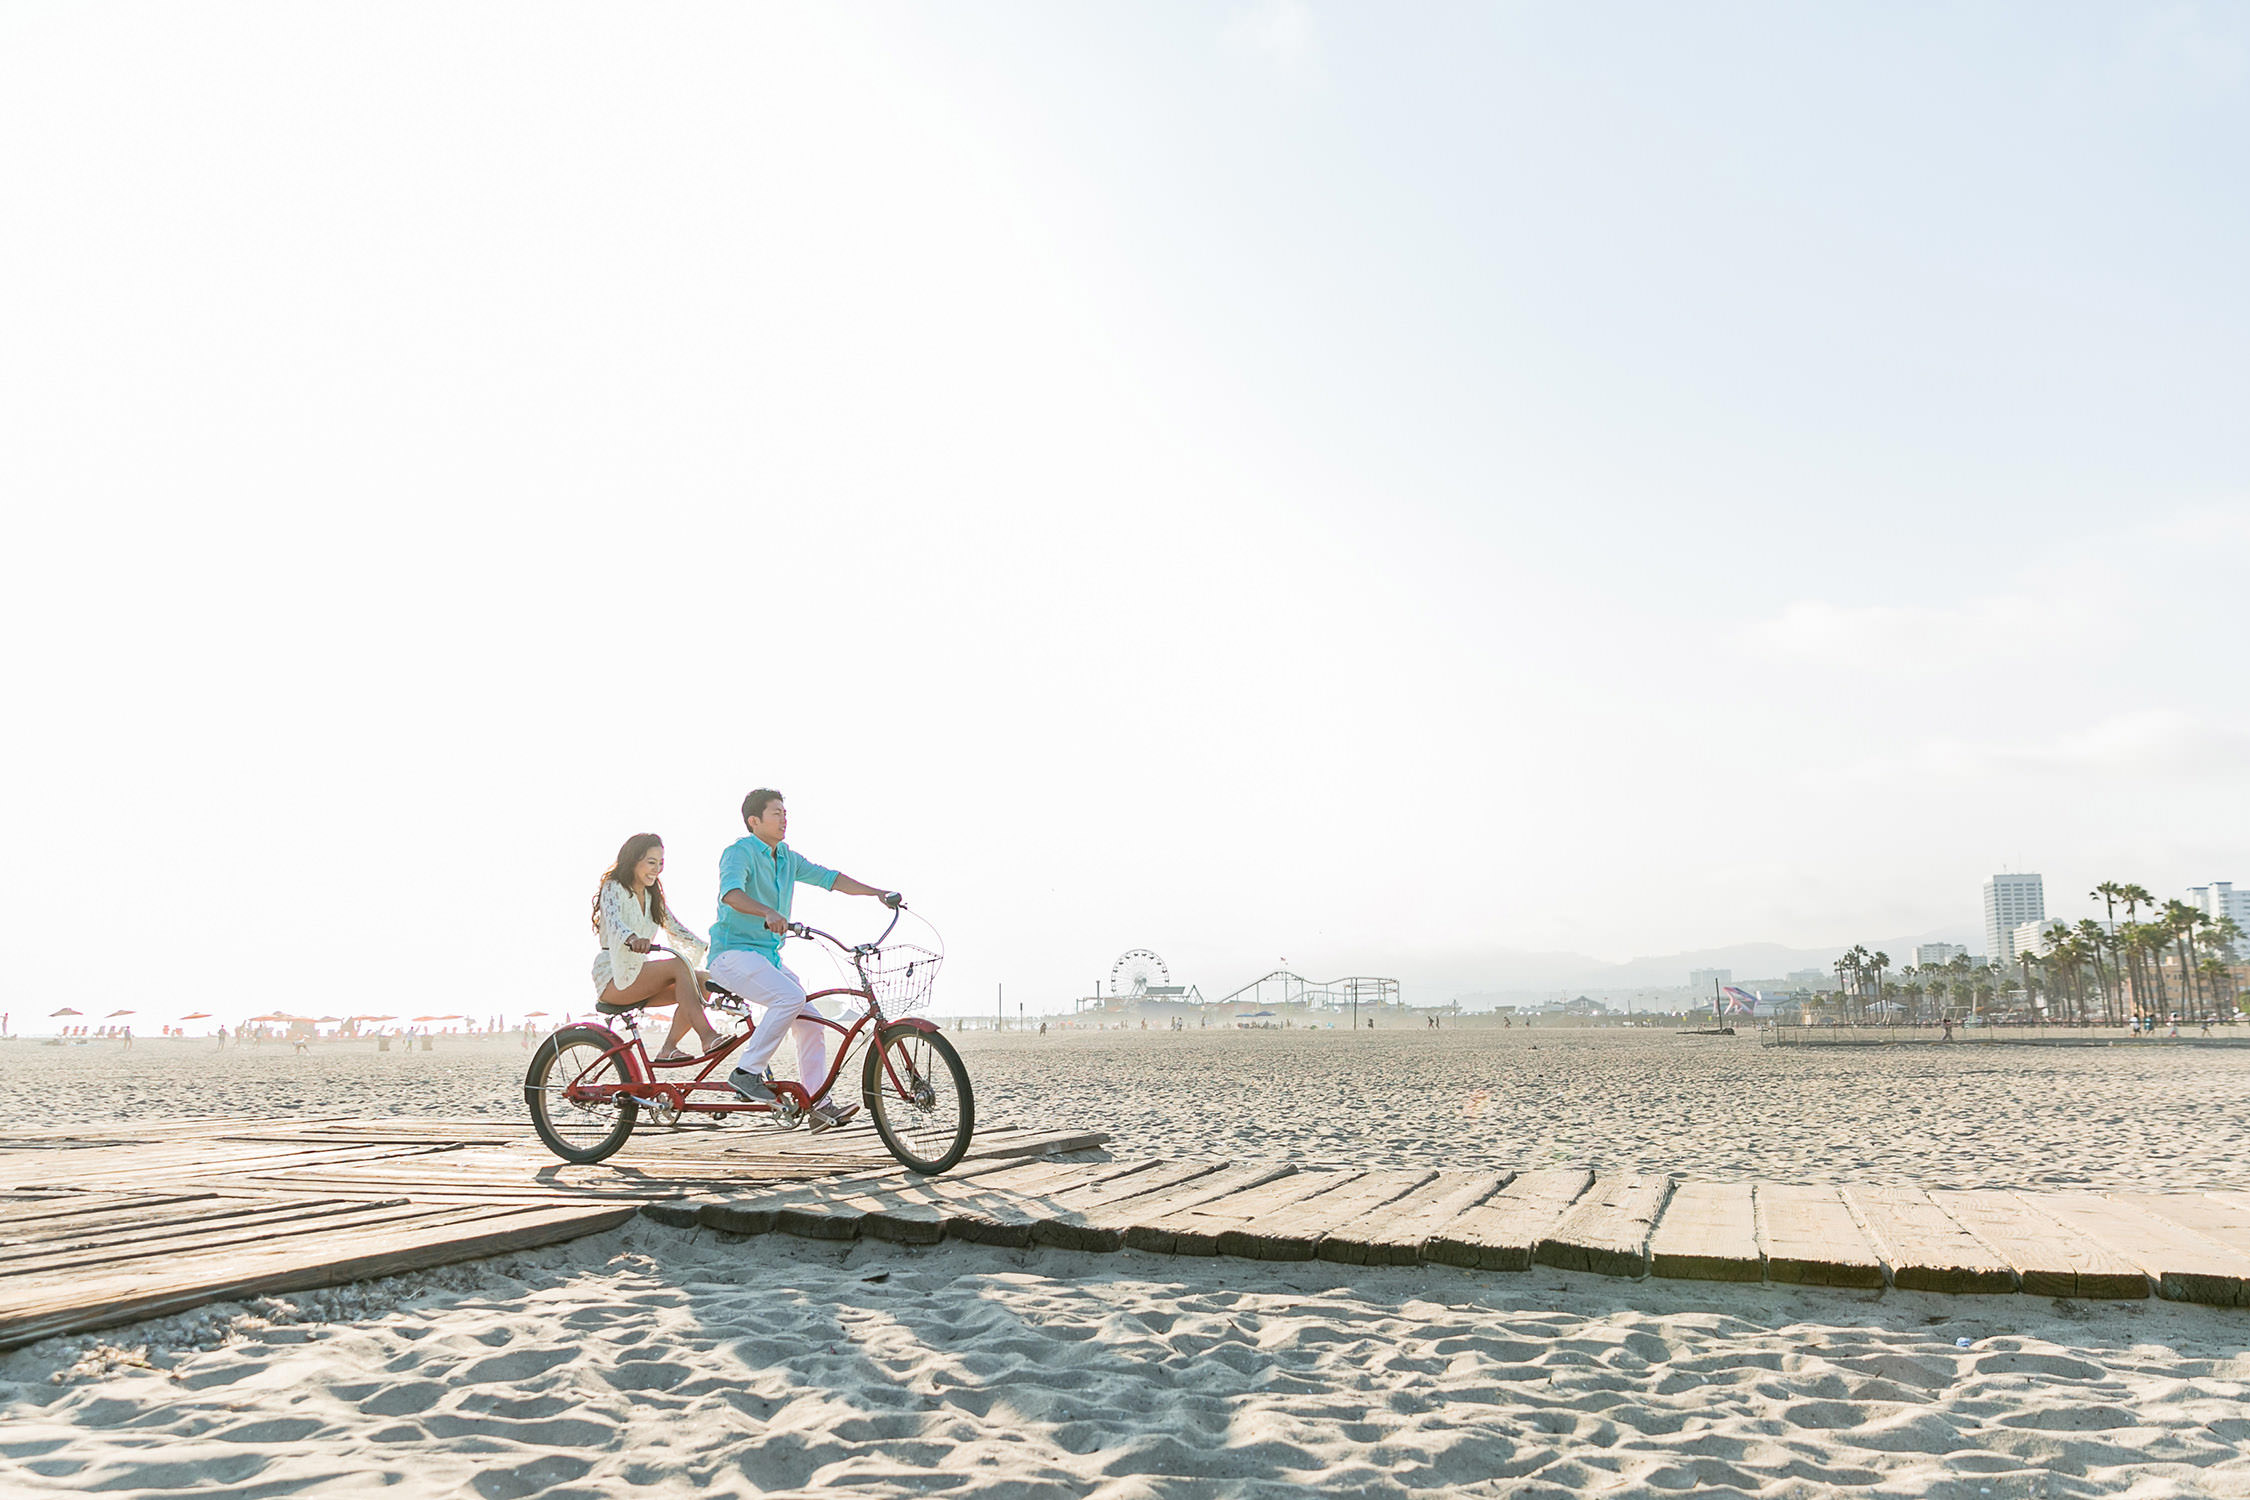 Engagement session on beach bike in Santa Monica beach, Southern California